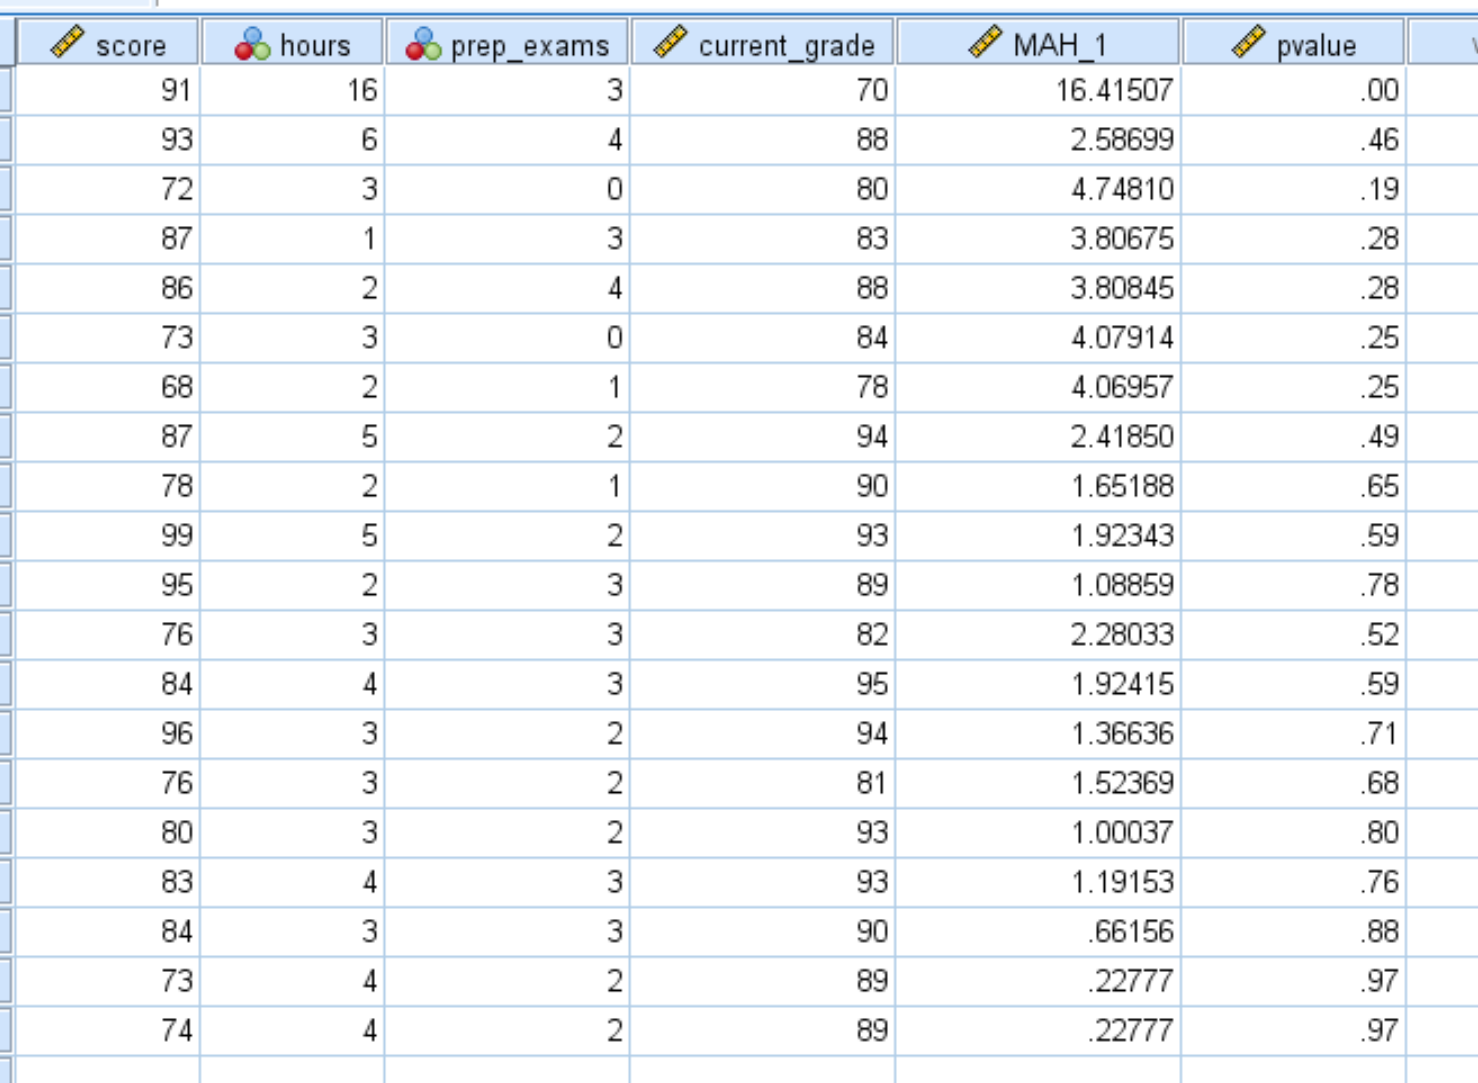 P-values for Mahalanobis distance in SPSS